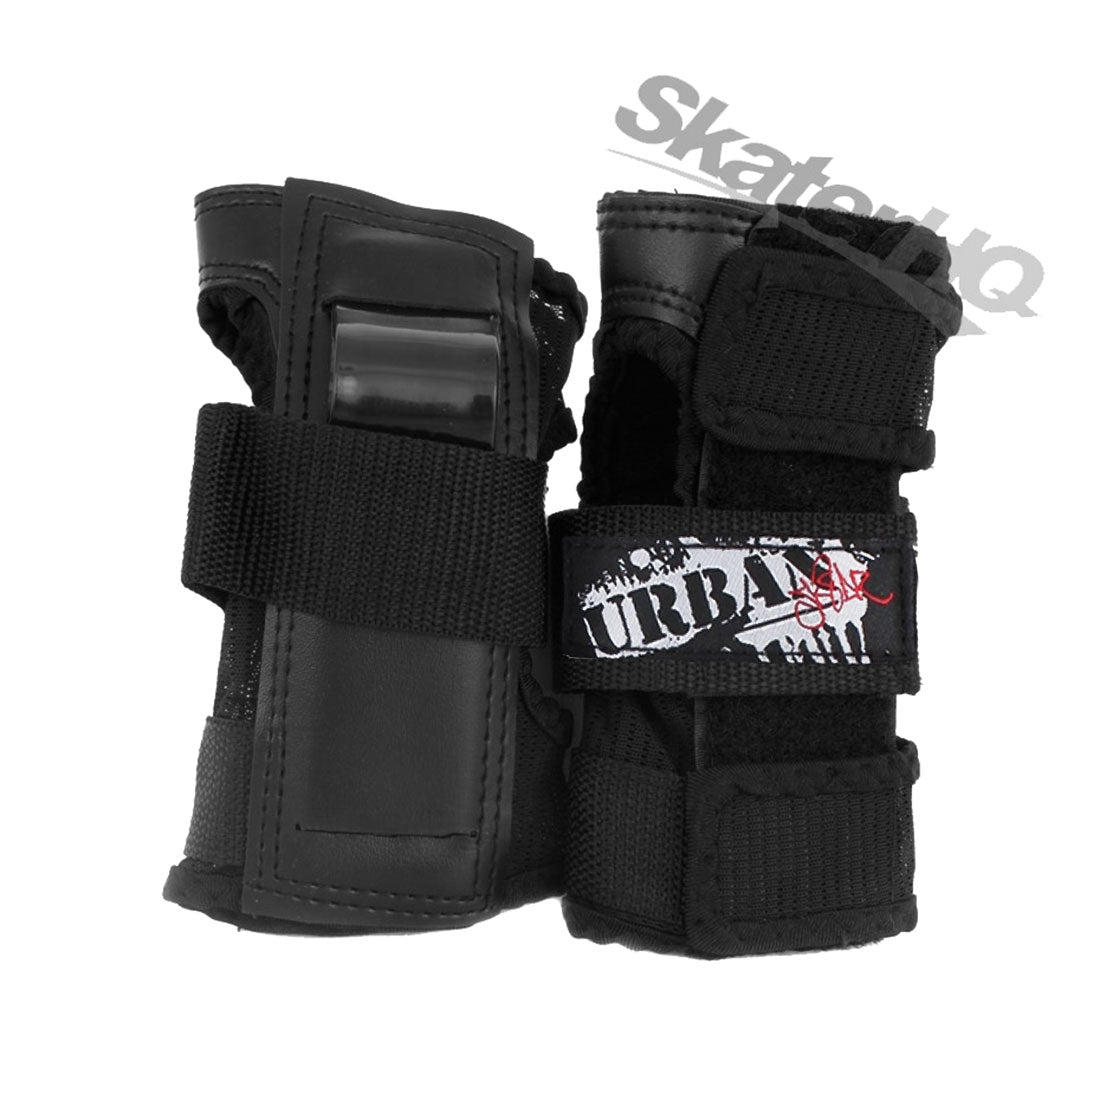 Urban Skater Wrist Guards - Small